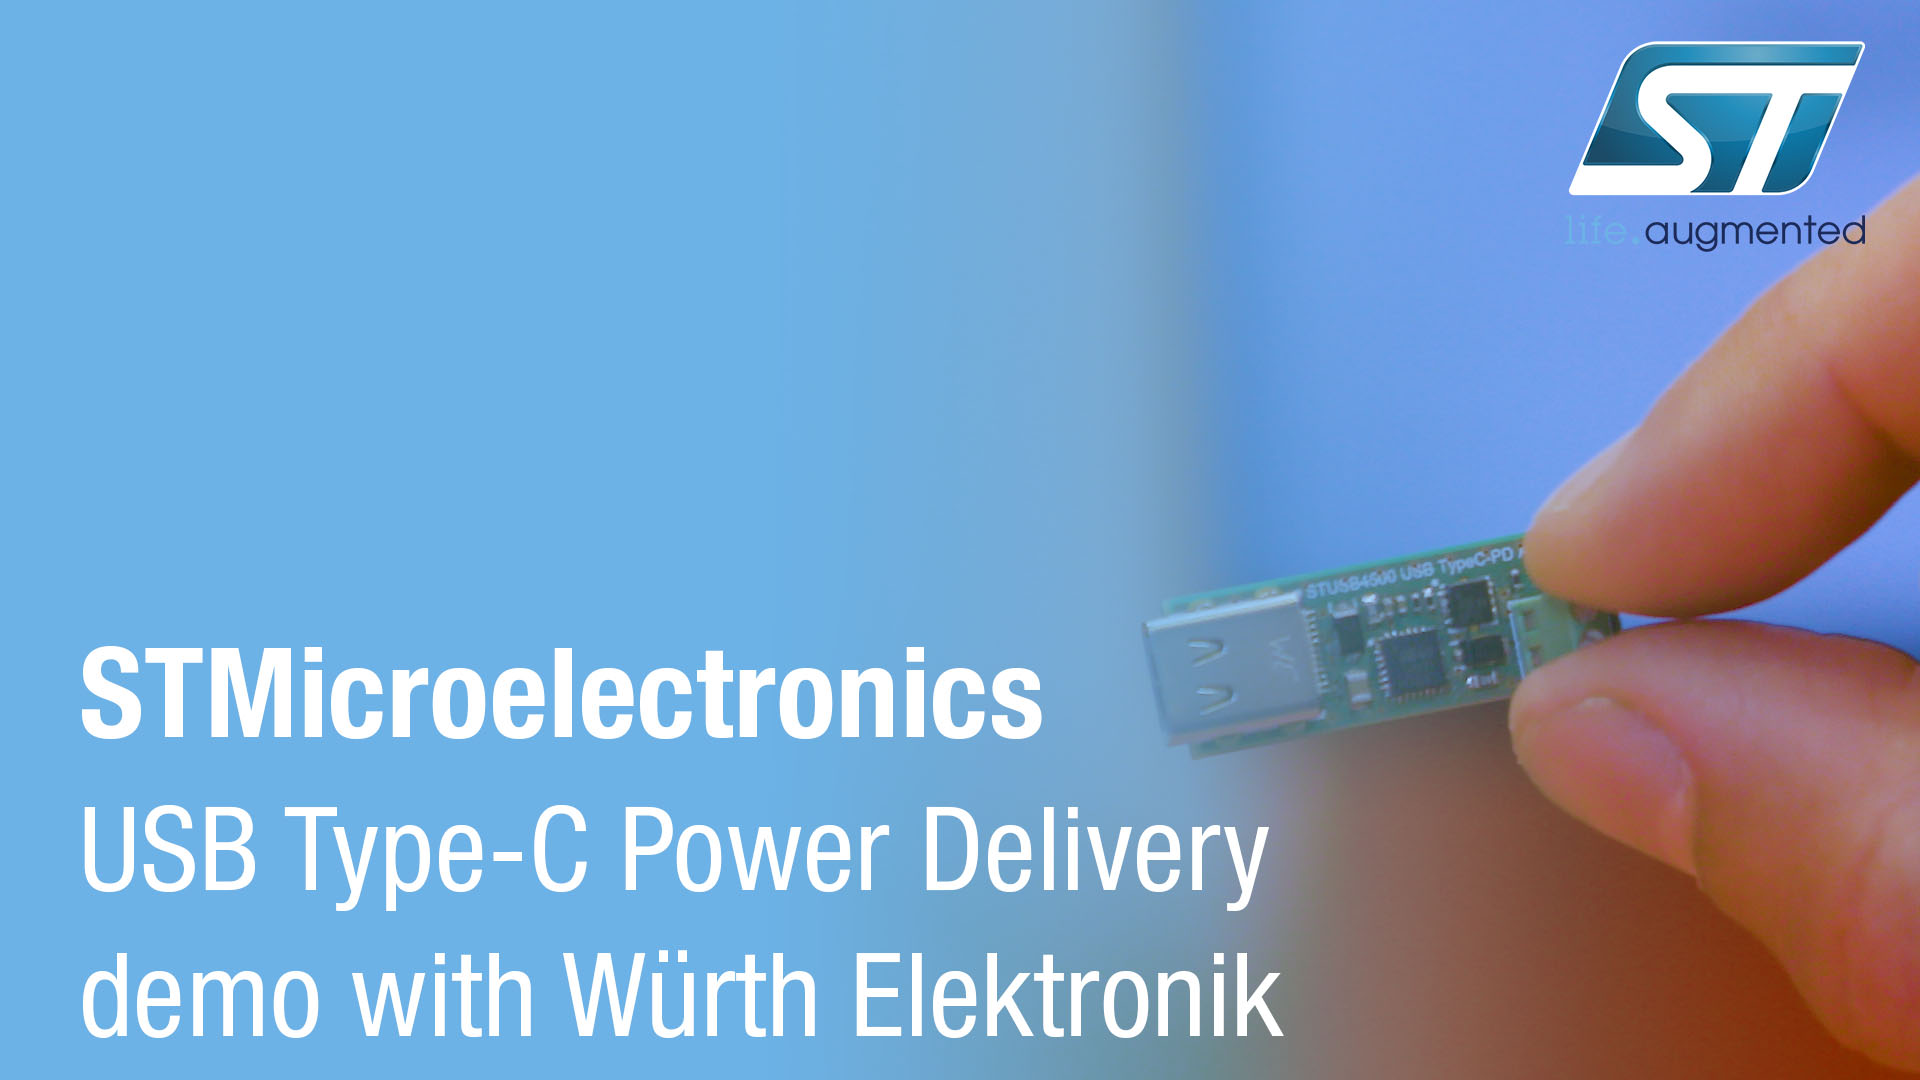 ST at Electronica - USB Type-C PD demo with Würth Elektronik